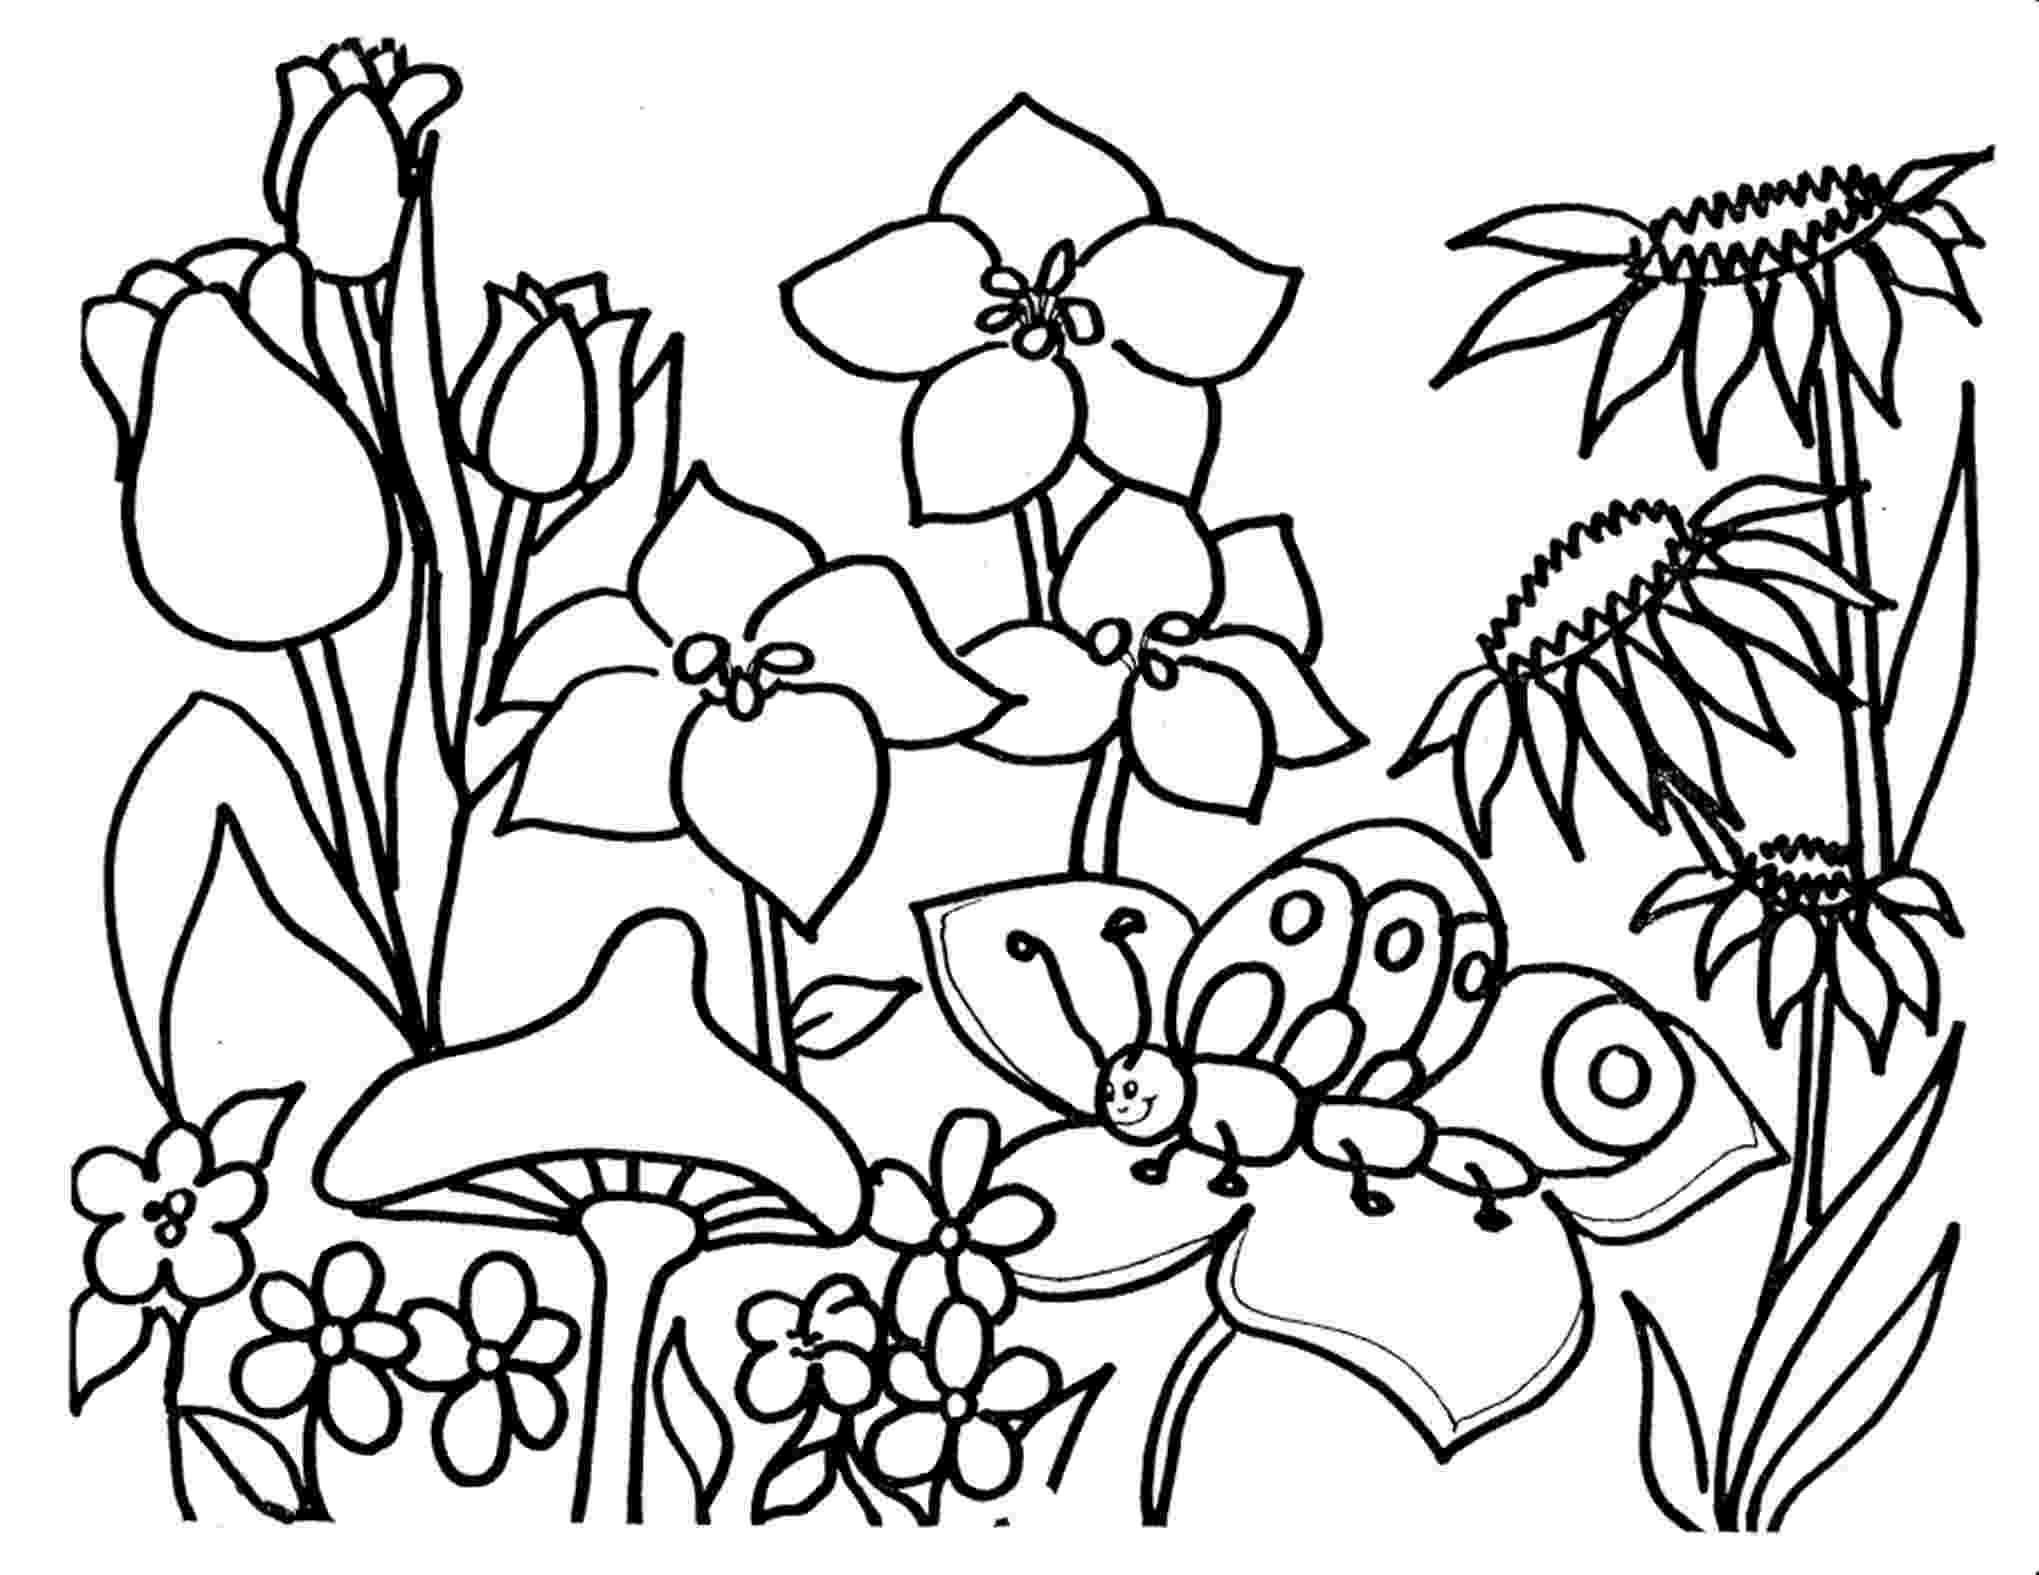 flowers printable coloring pages free printable flower coloring pages for kids best flowers printable coloring pages